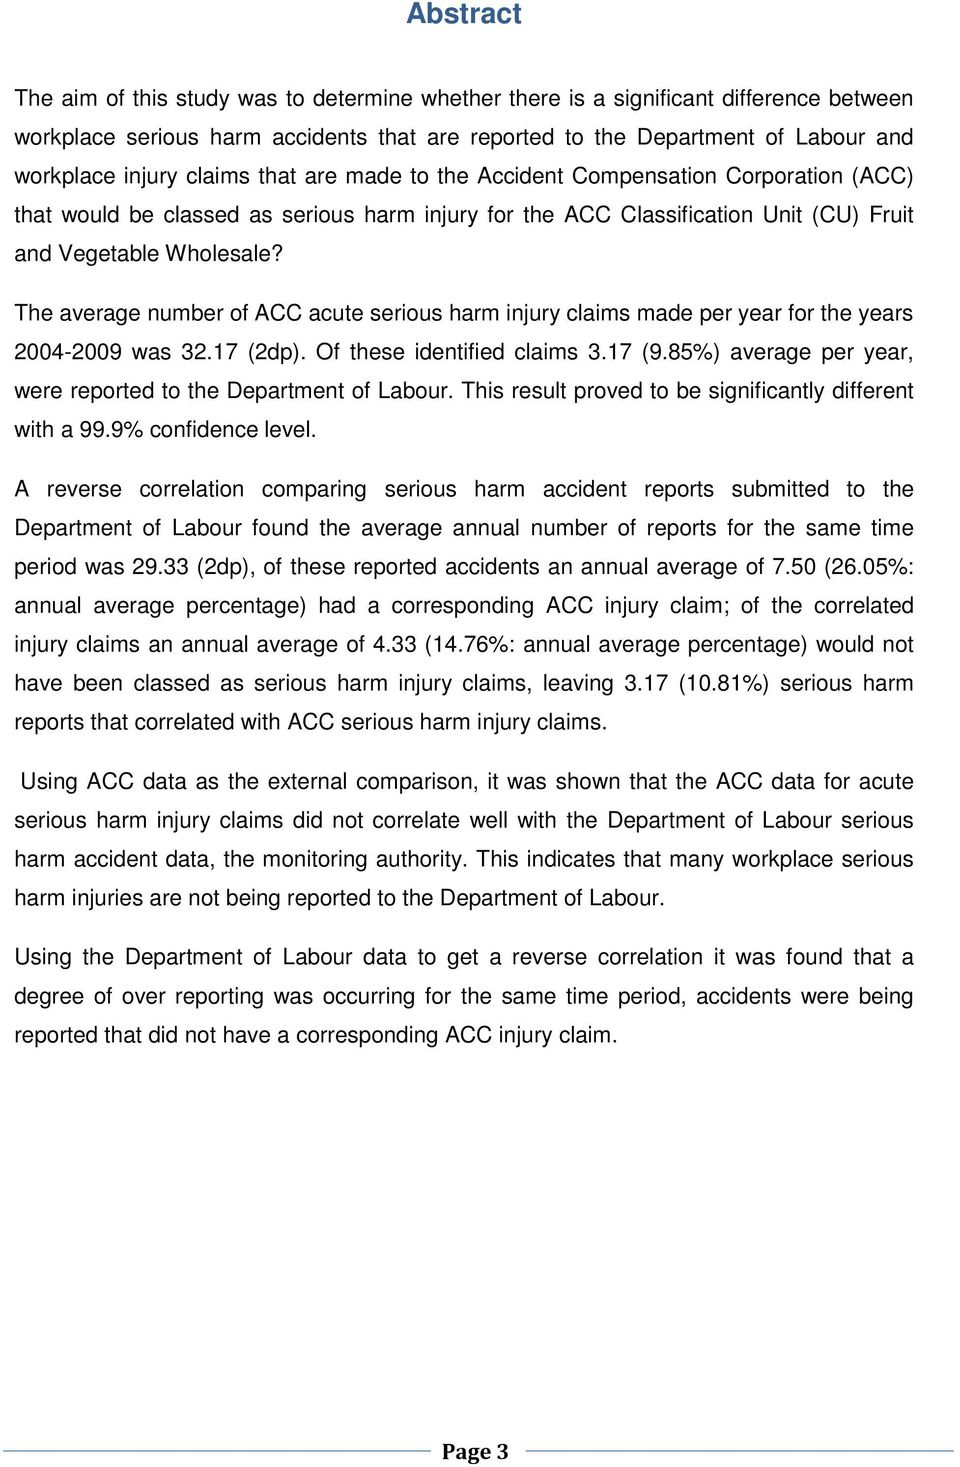 The average number of ACC acute serious harm injury claims made per year for the years 2004-2009 was 32.17 (2dp). Of these identified claims 3.17 (9.